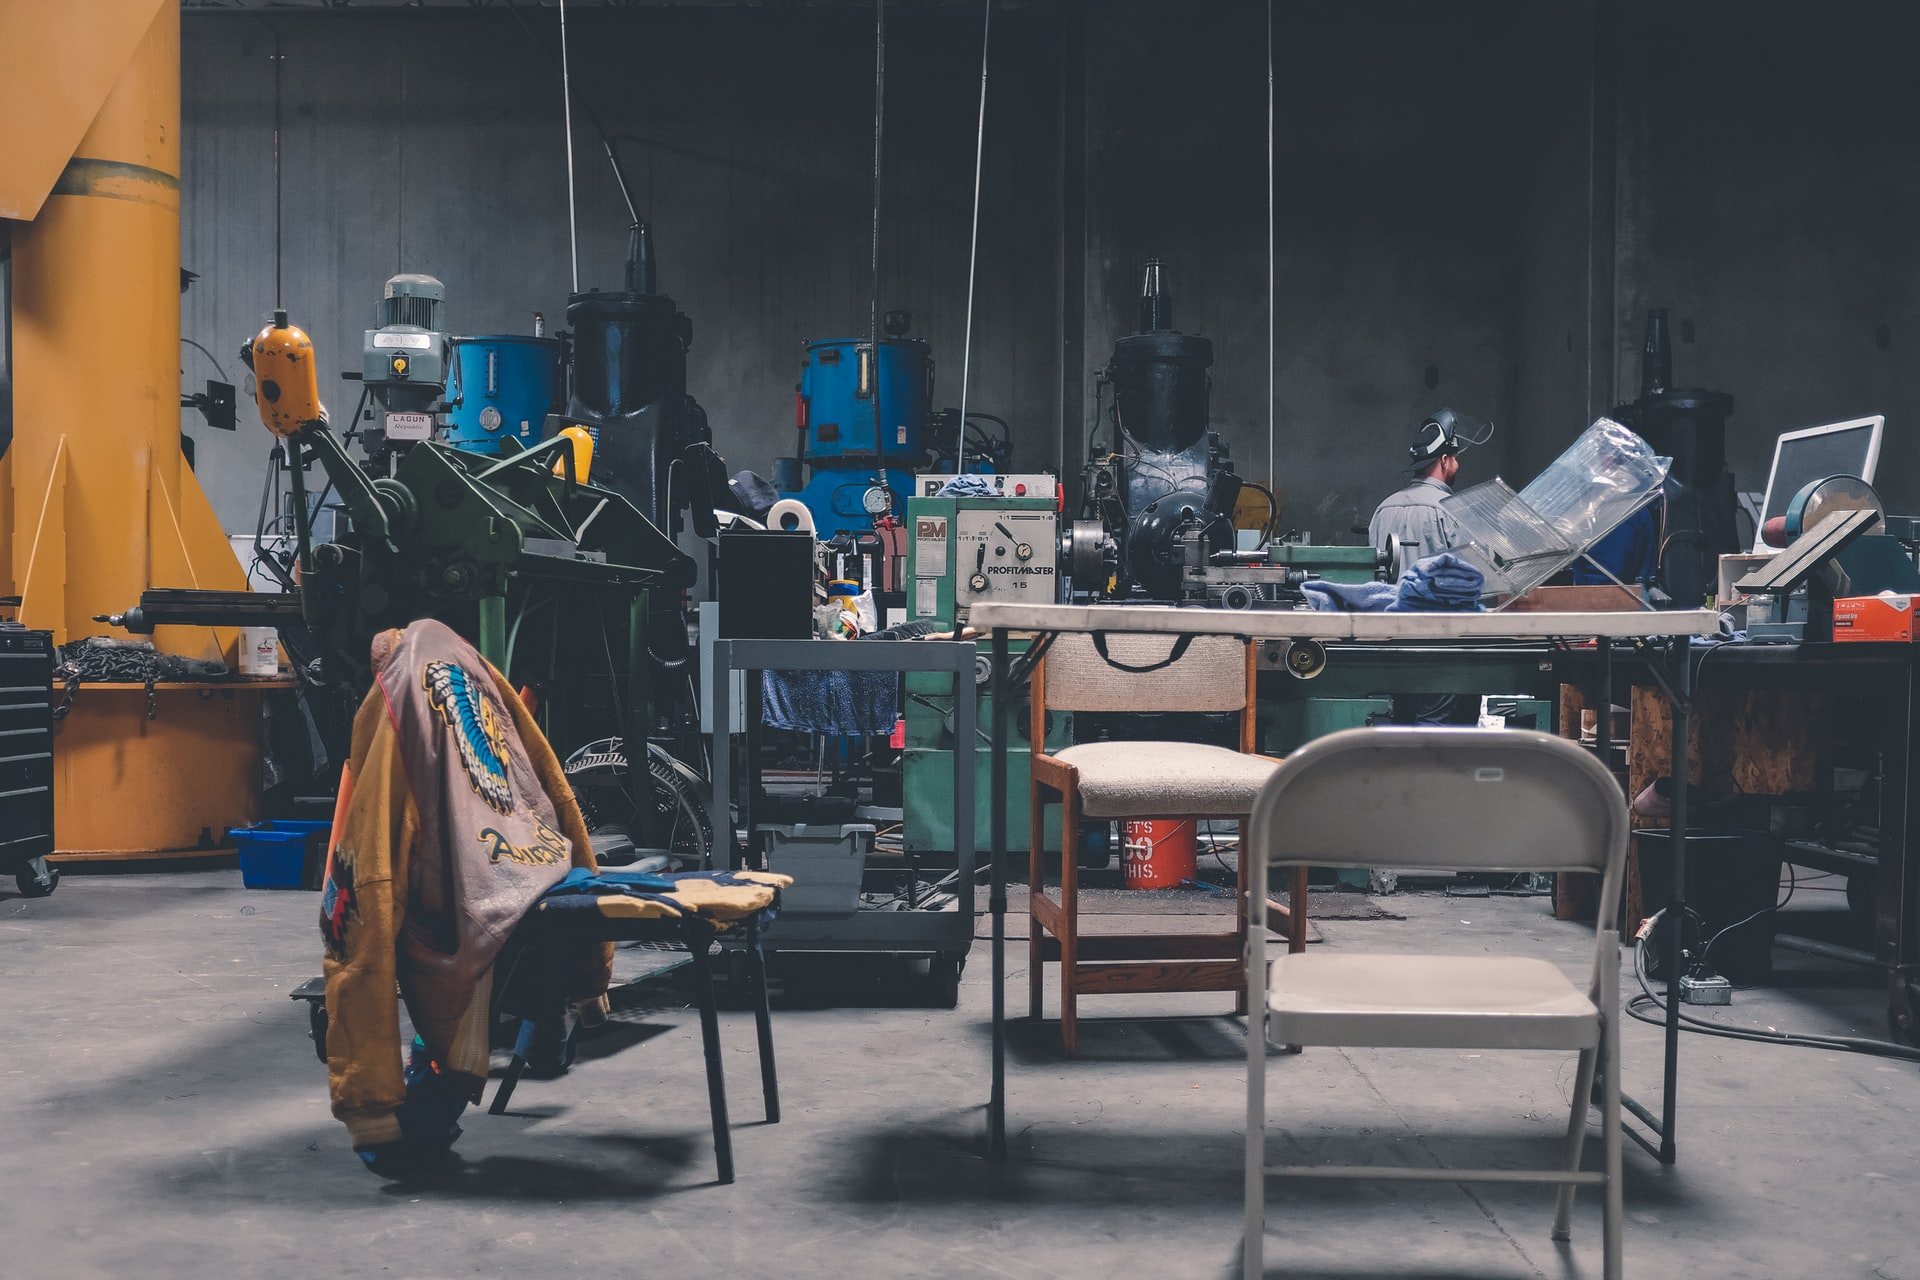 magine courtesy of NeONBRAND via Unsplash. This photo represents a garage crowded with things that fit with Salnted & Enchanted as it was recorded ina similar setting